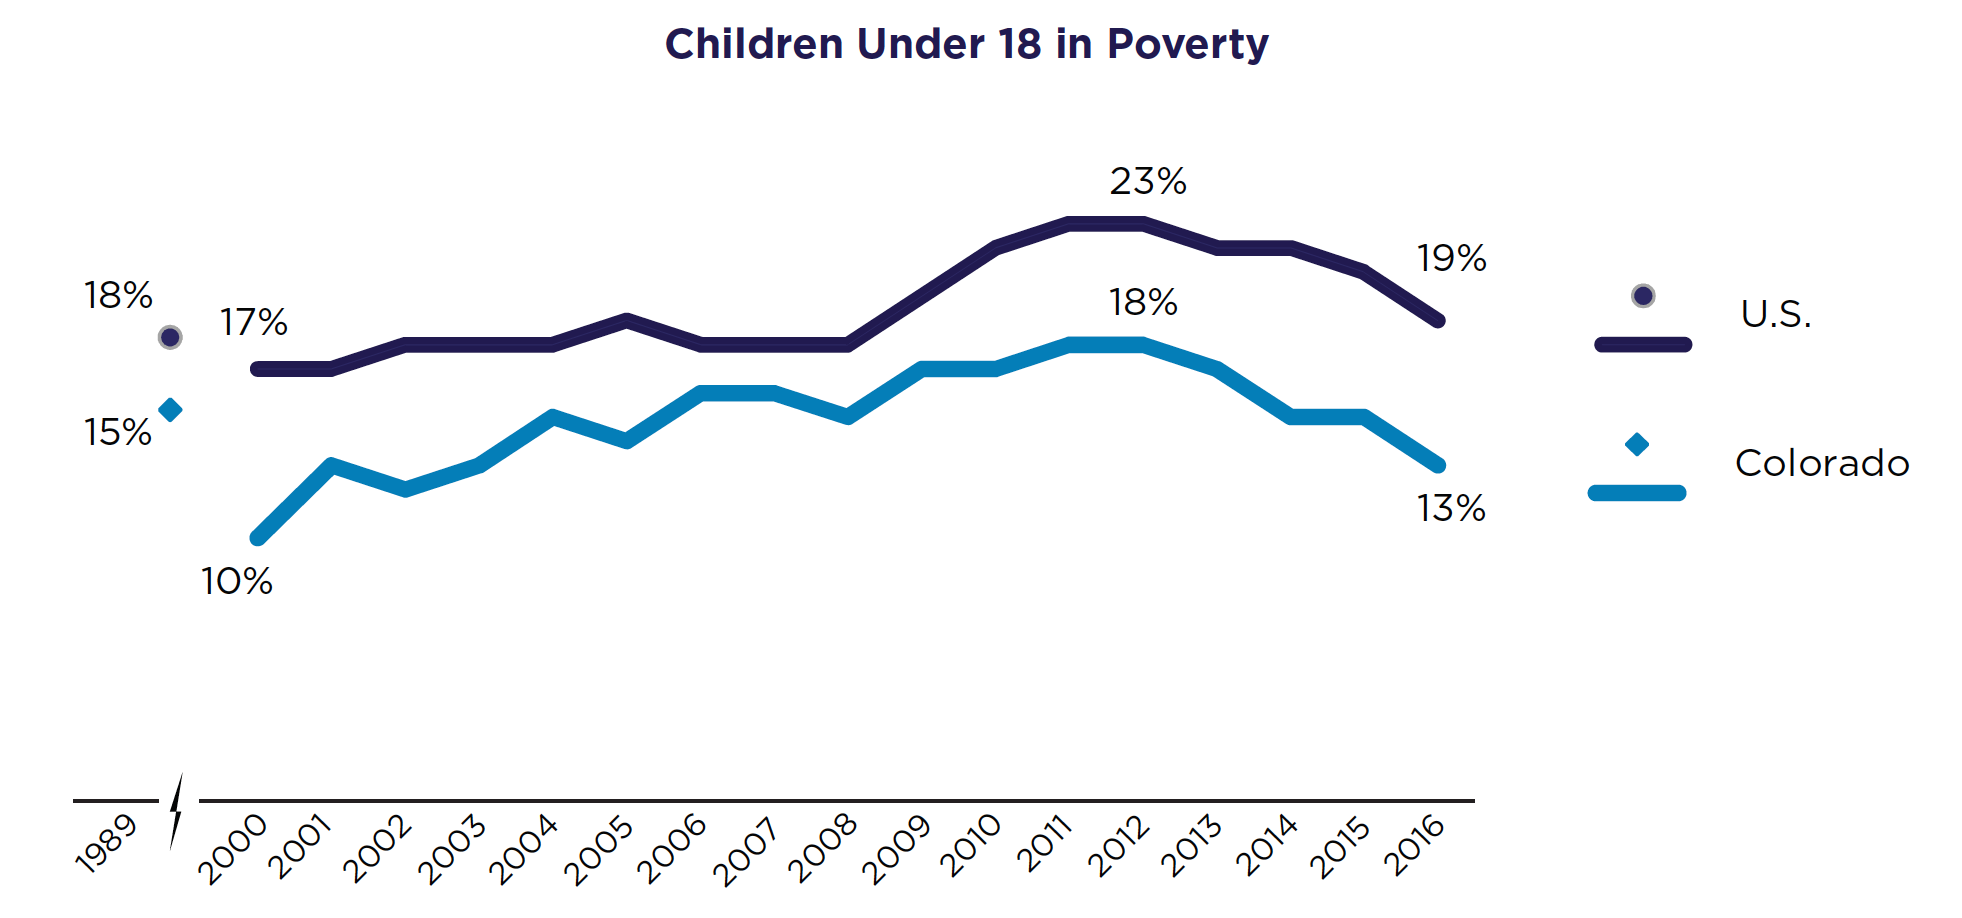 Children Under 18 in Poverty